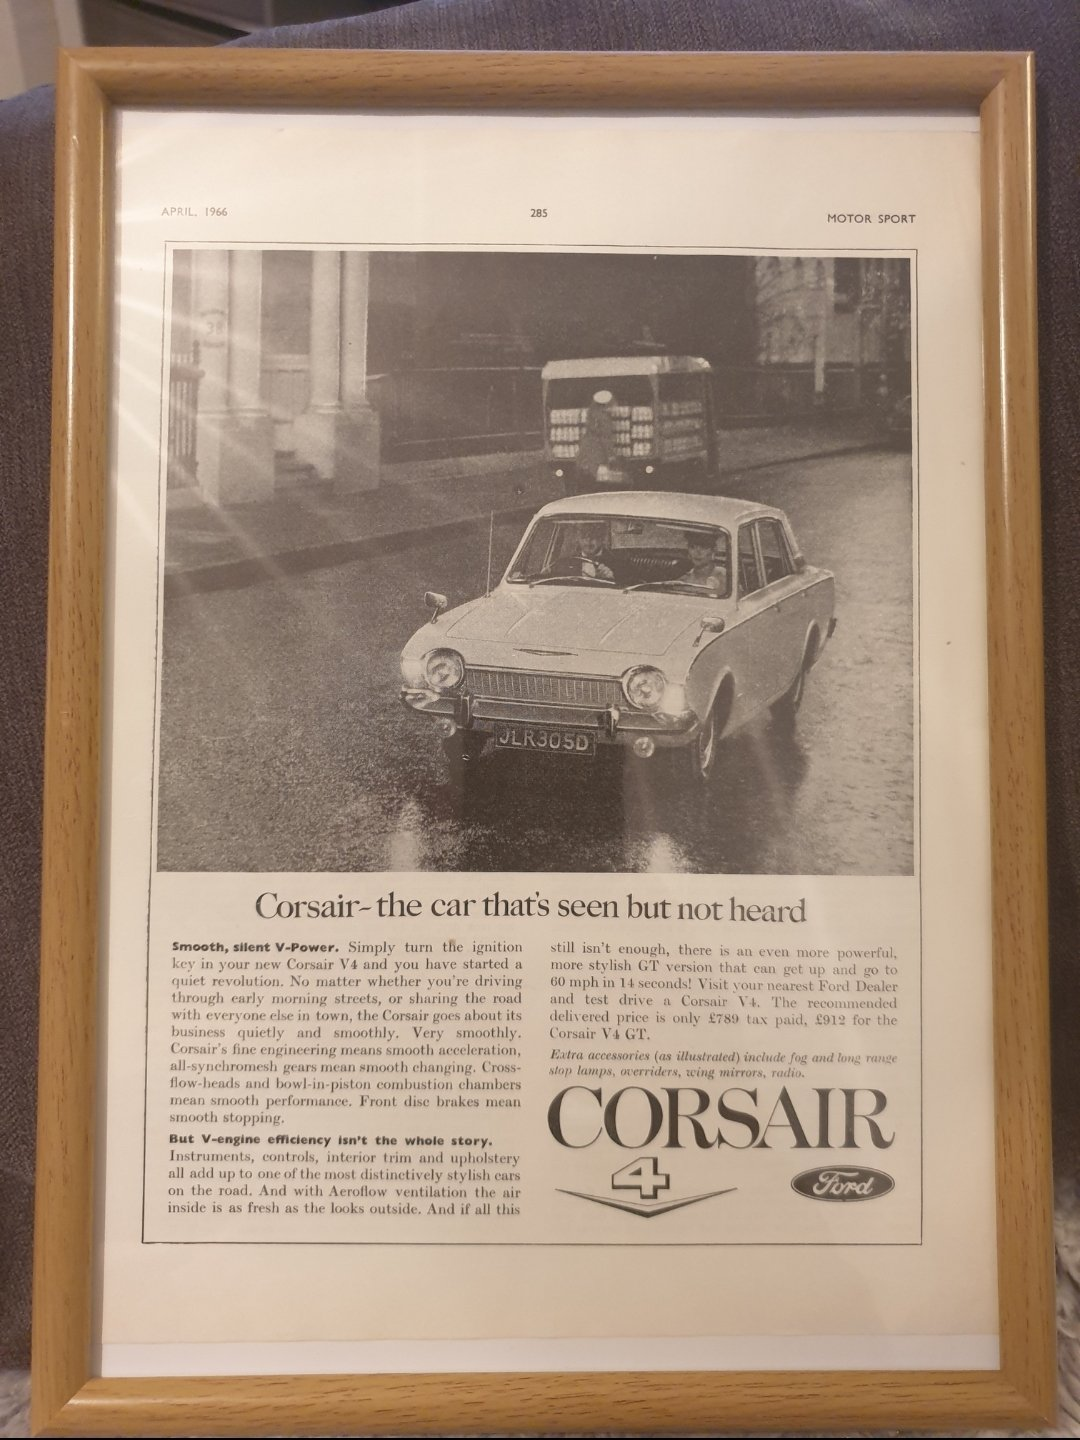 1966 Ford Corsair Framed Advert Original  For Sale (picture 1 of 2)